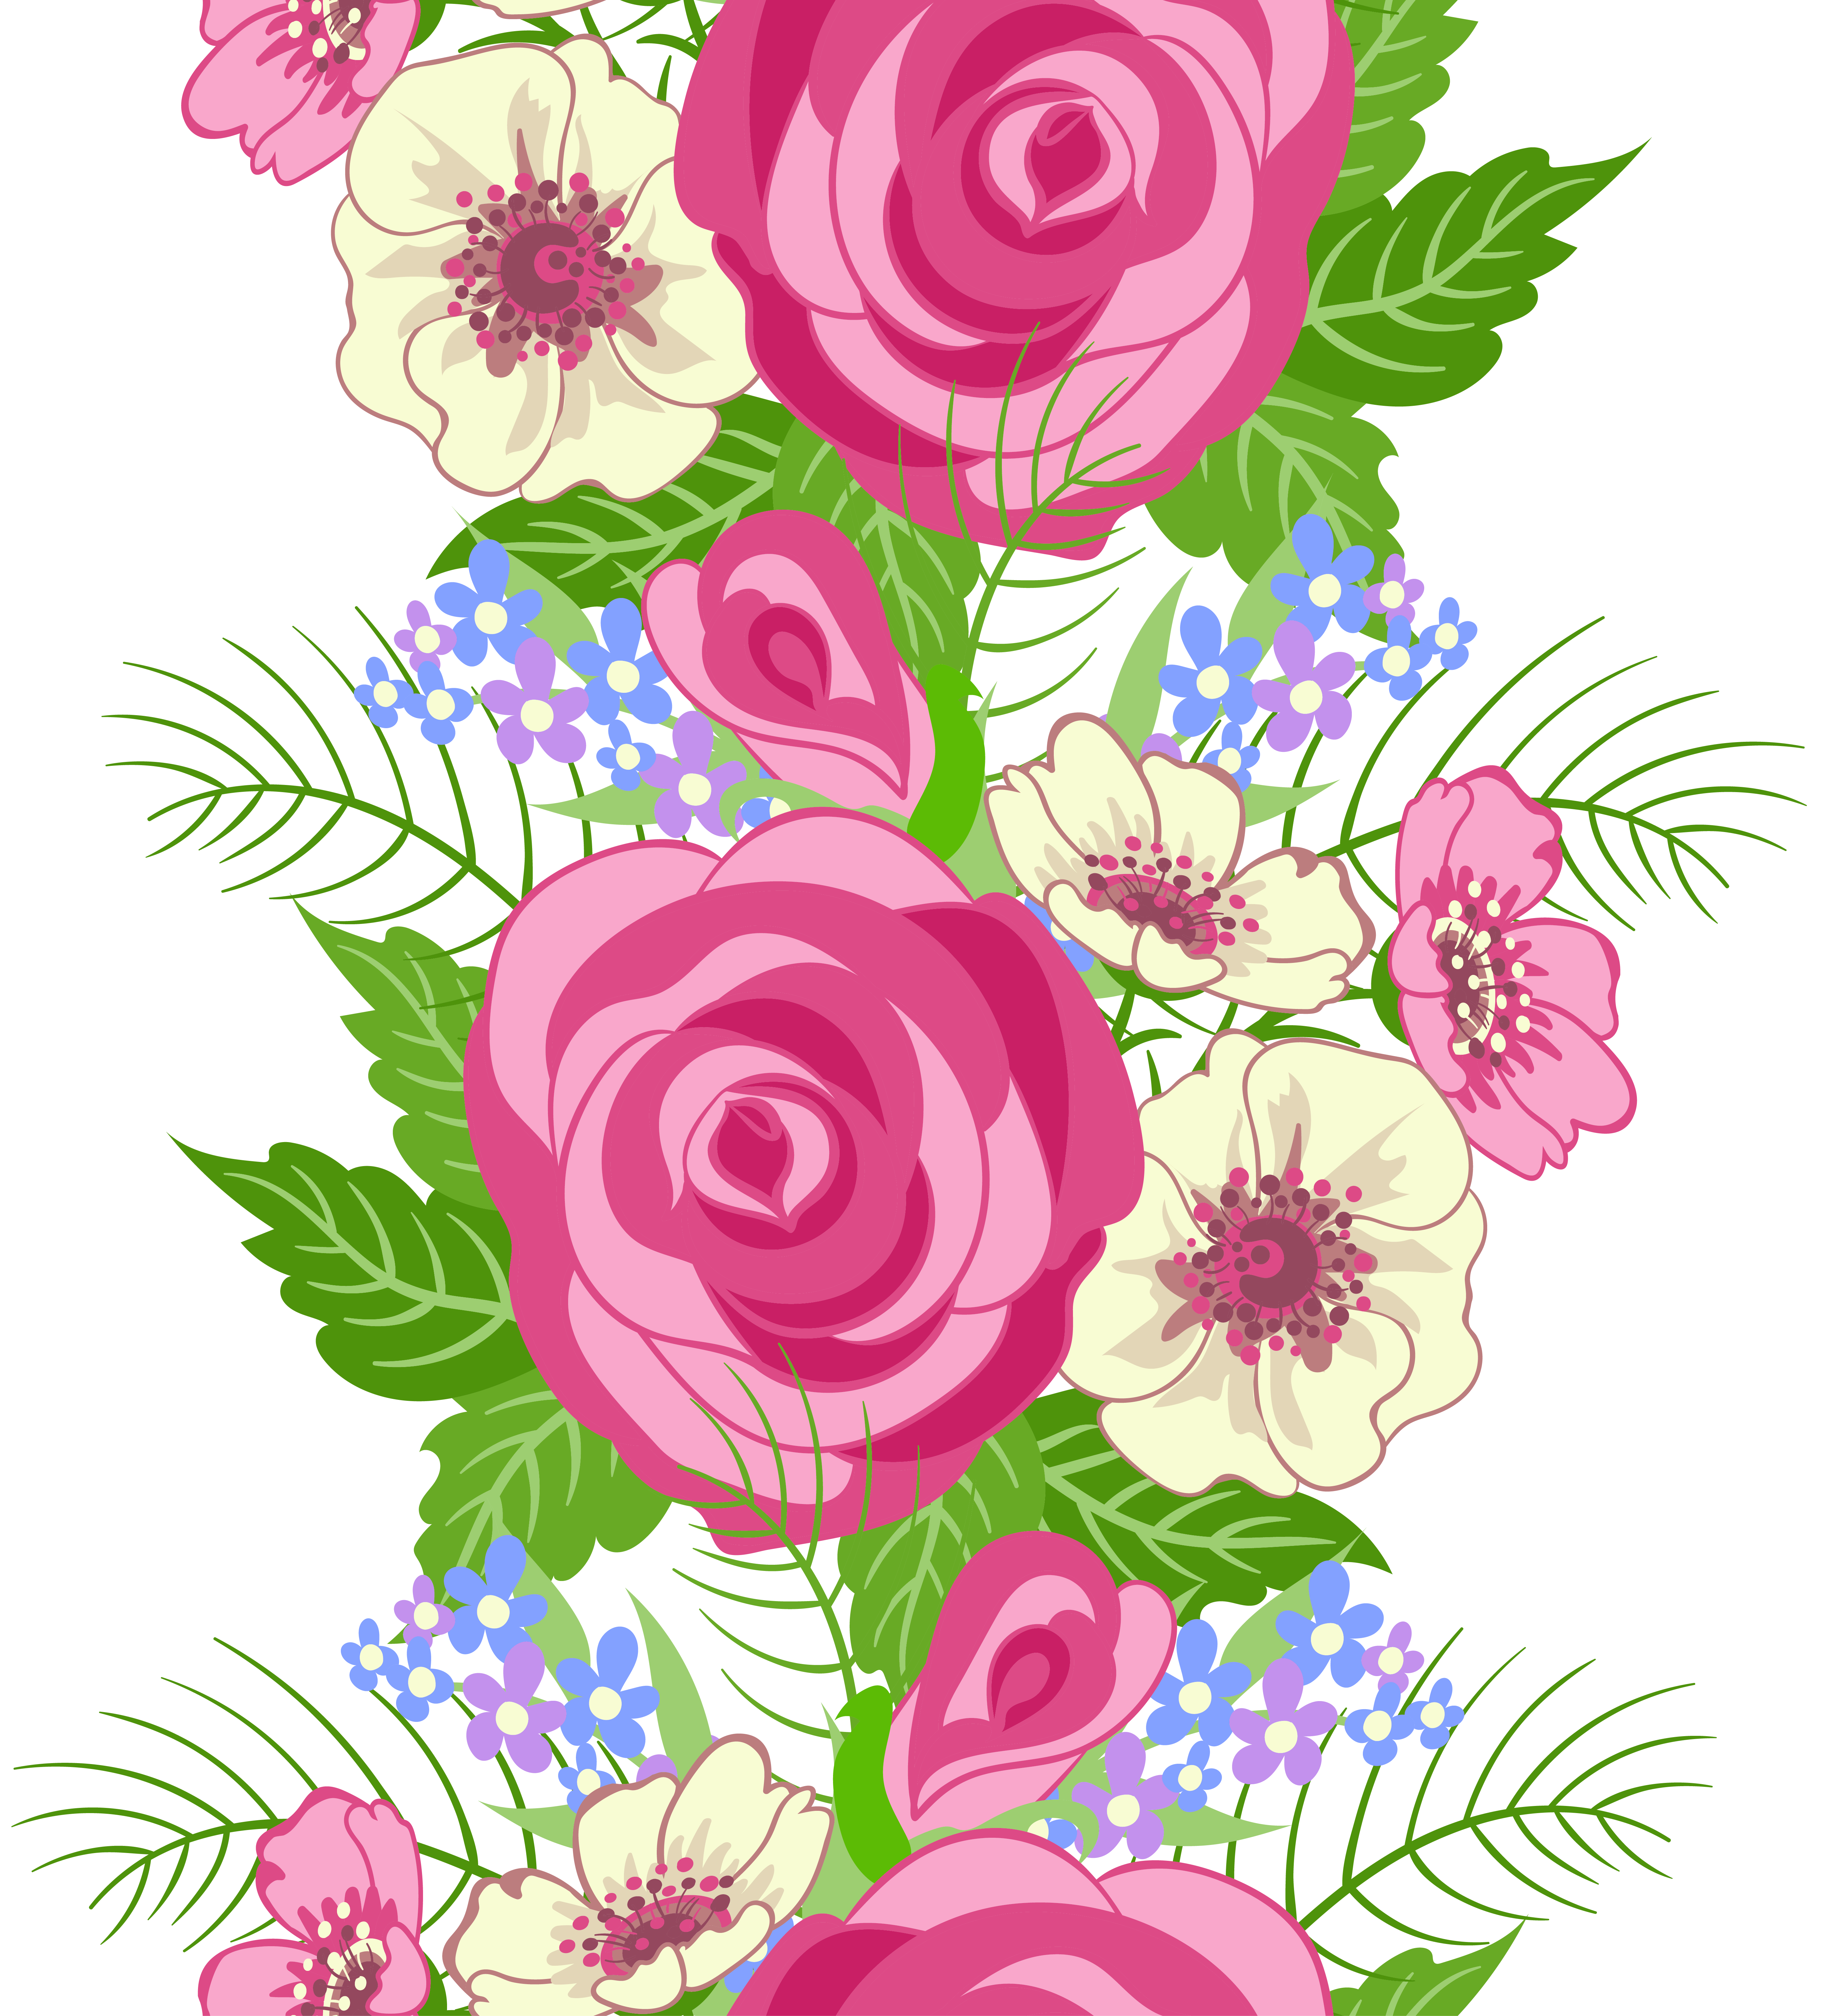 Floral element png image. Clipart rose embroidery